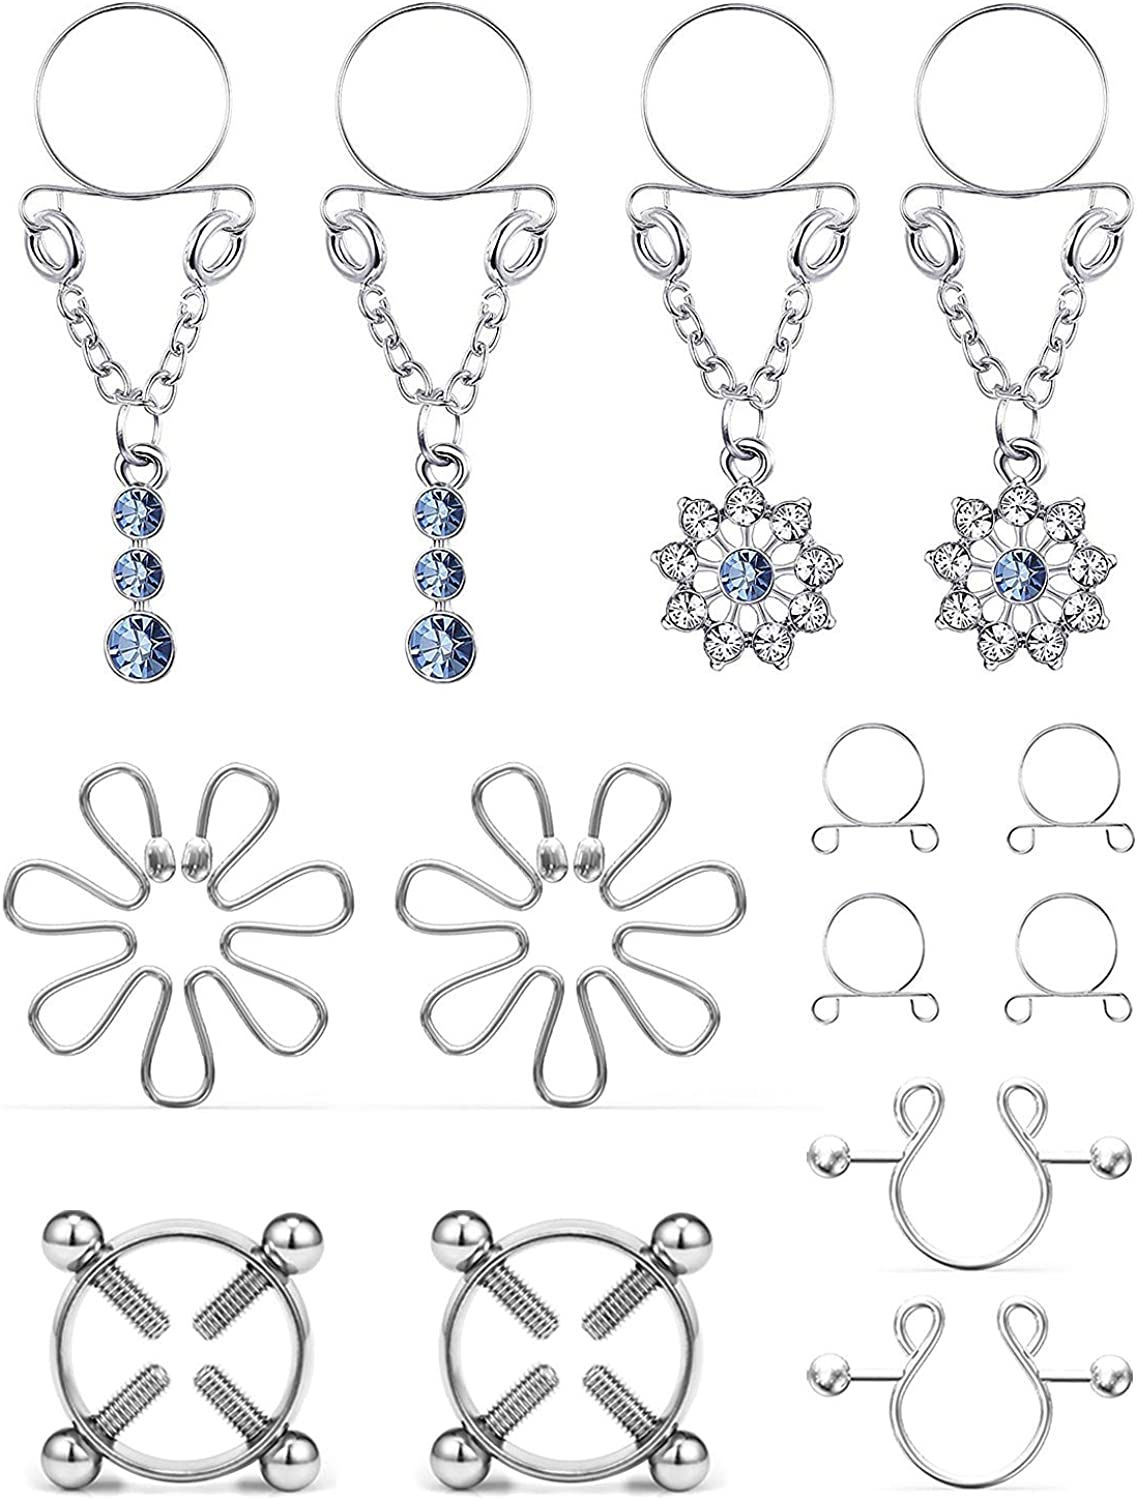 Cisyozi 5Pairs Stainless Steel Fake Nipple Rings for Women Non-Piercing Dangle Nipplerings Faux Body Piercing Jewelry